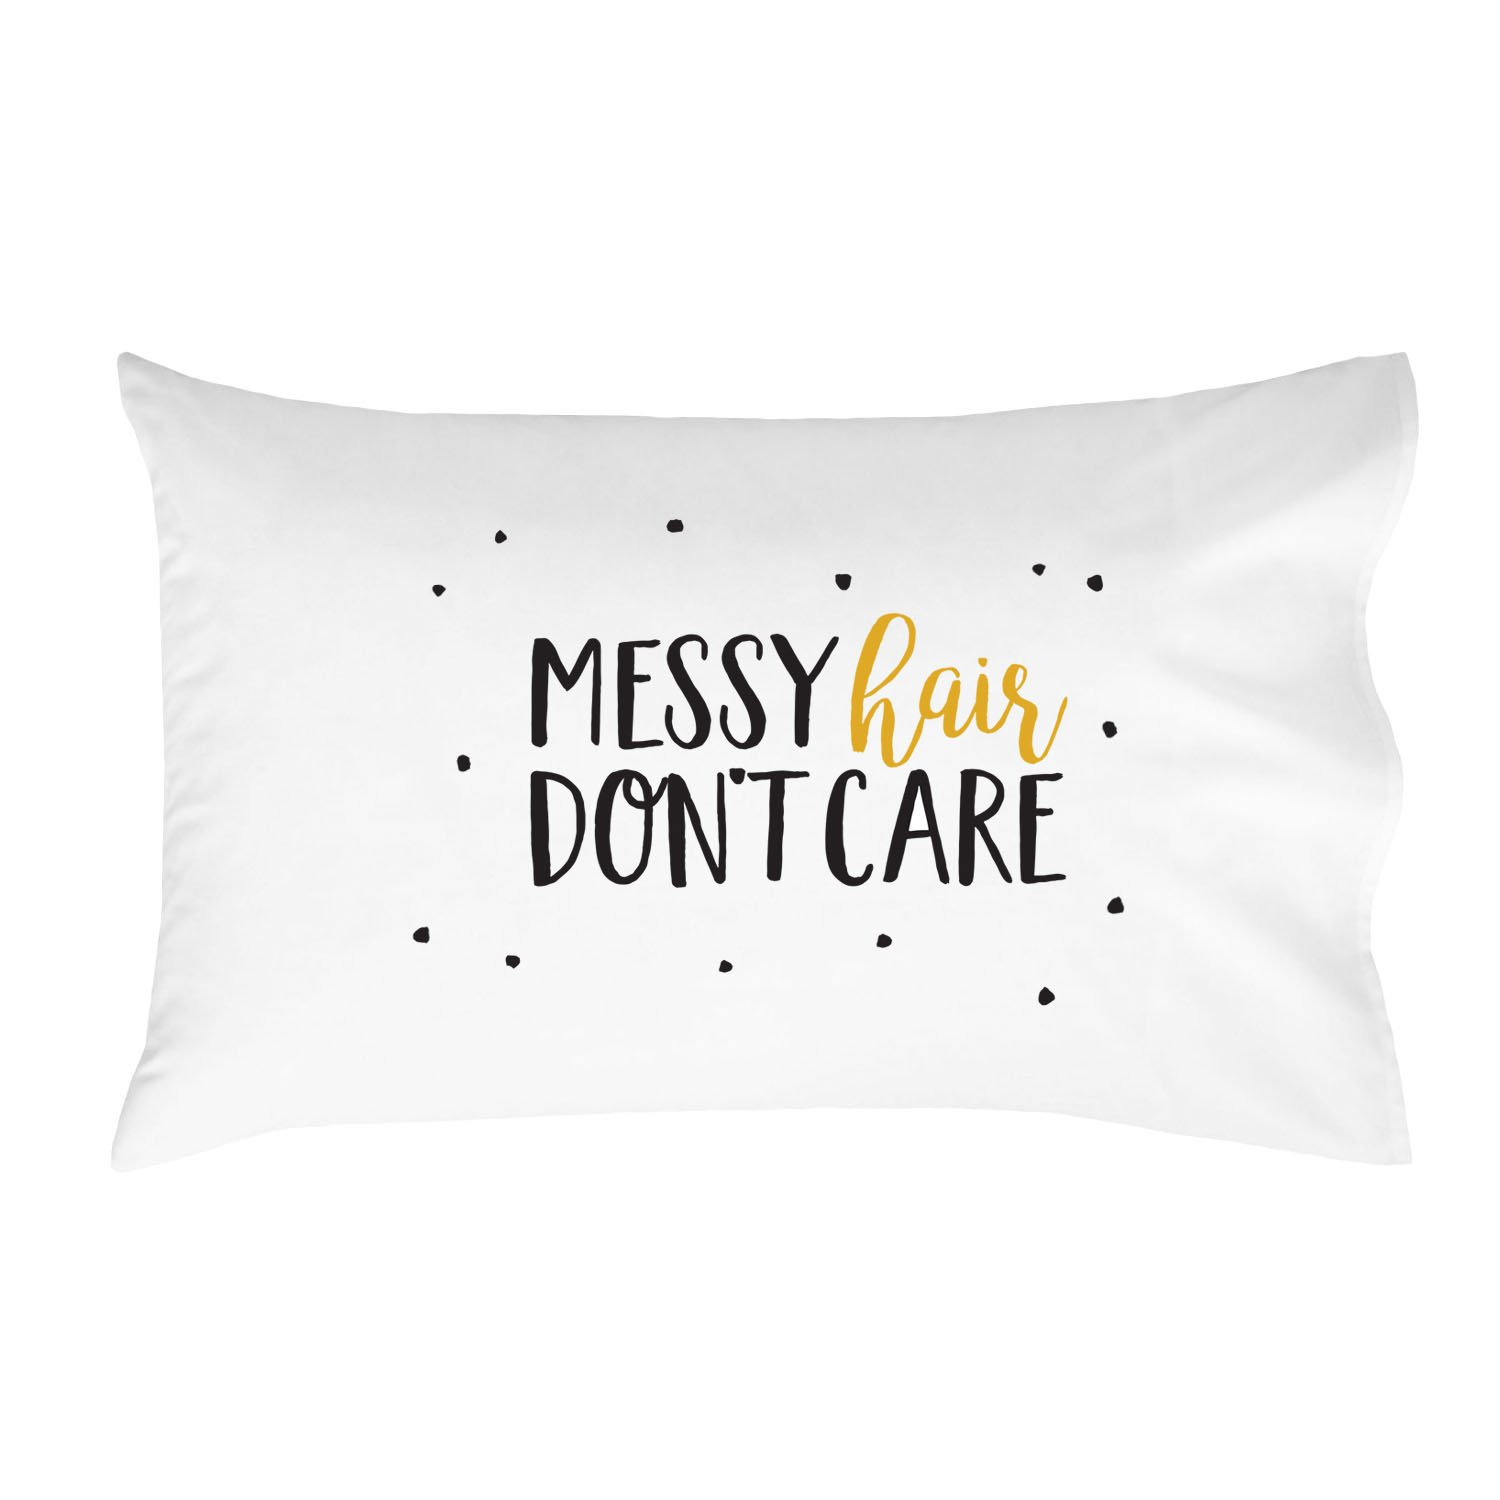 Oh, Susannah Messy Hair Don't Care Pillowcase (One 20x30 Standard/Queen Size Pillow Case) Girls Bedroom Decor Girlfriend Gifts